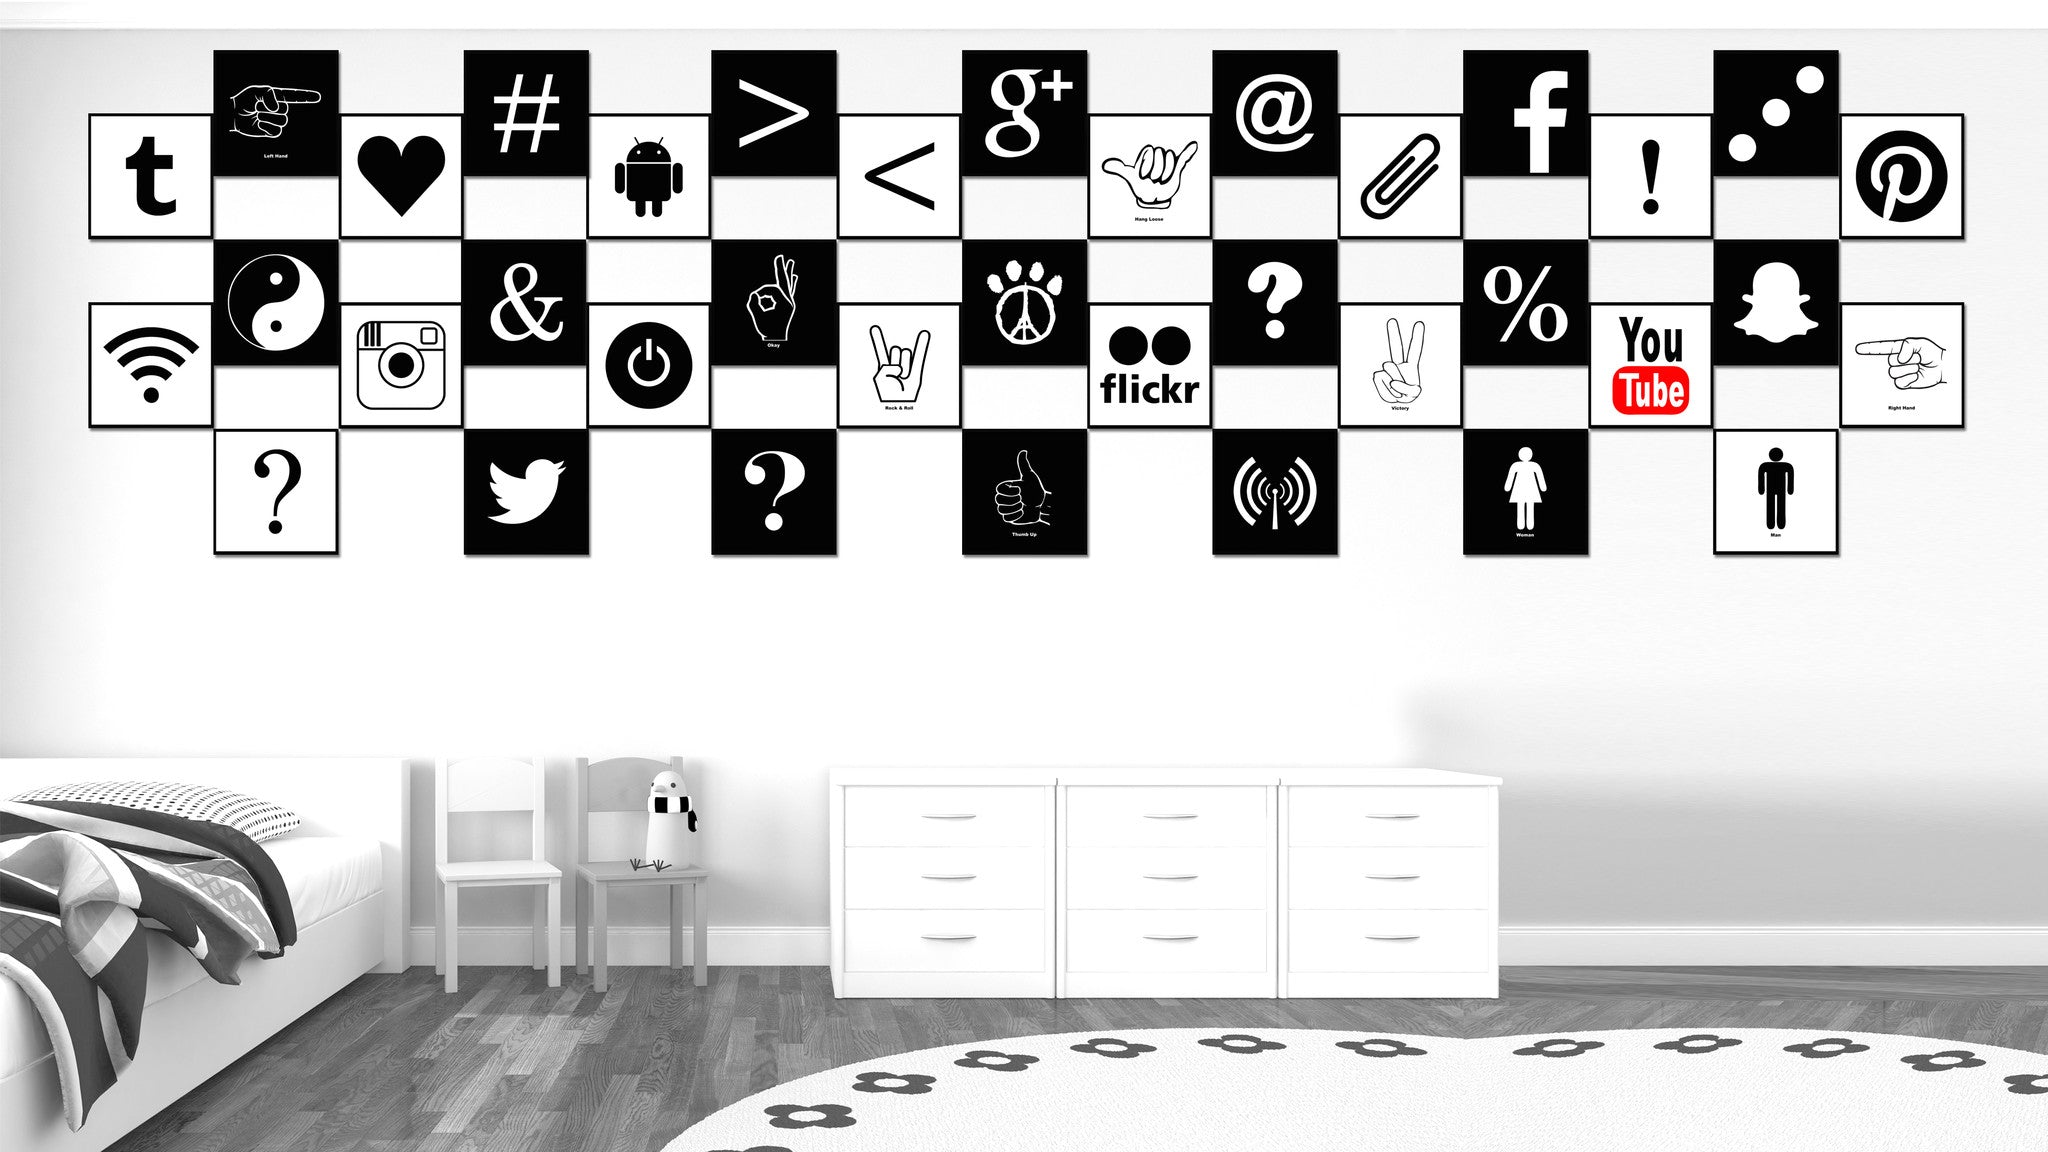 Dice Social Media Icon Canvas Print Picture Frame Wall Art Home Decor